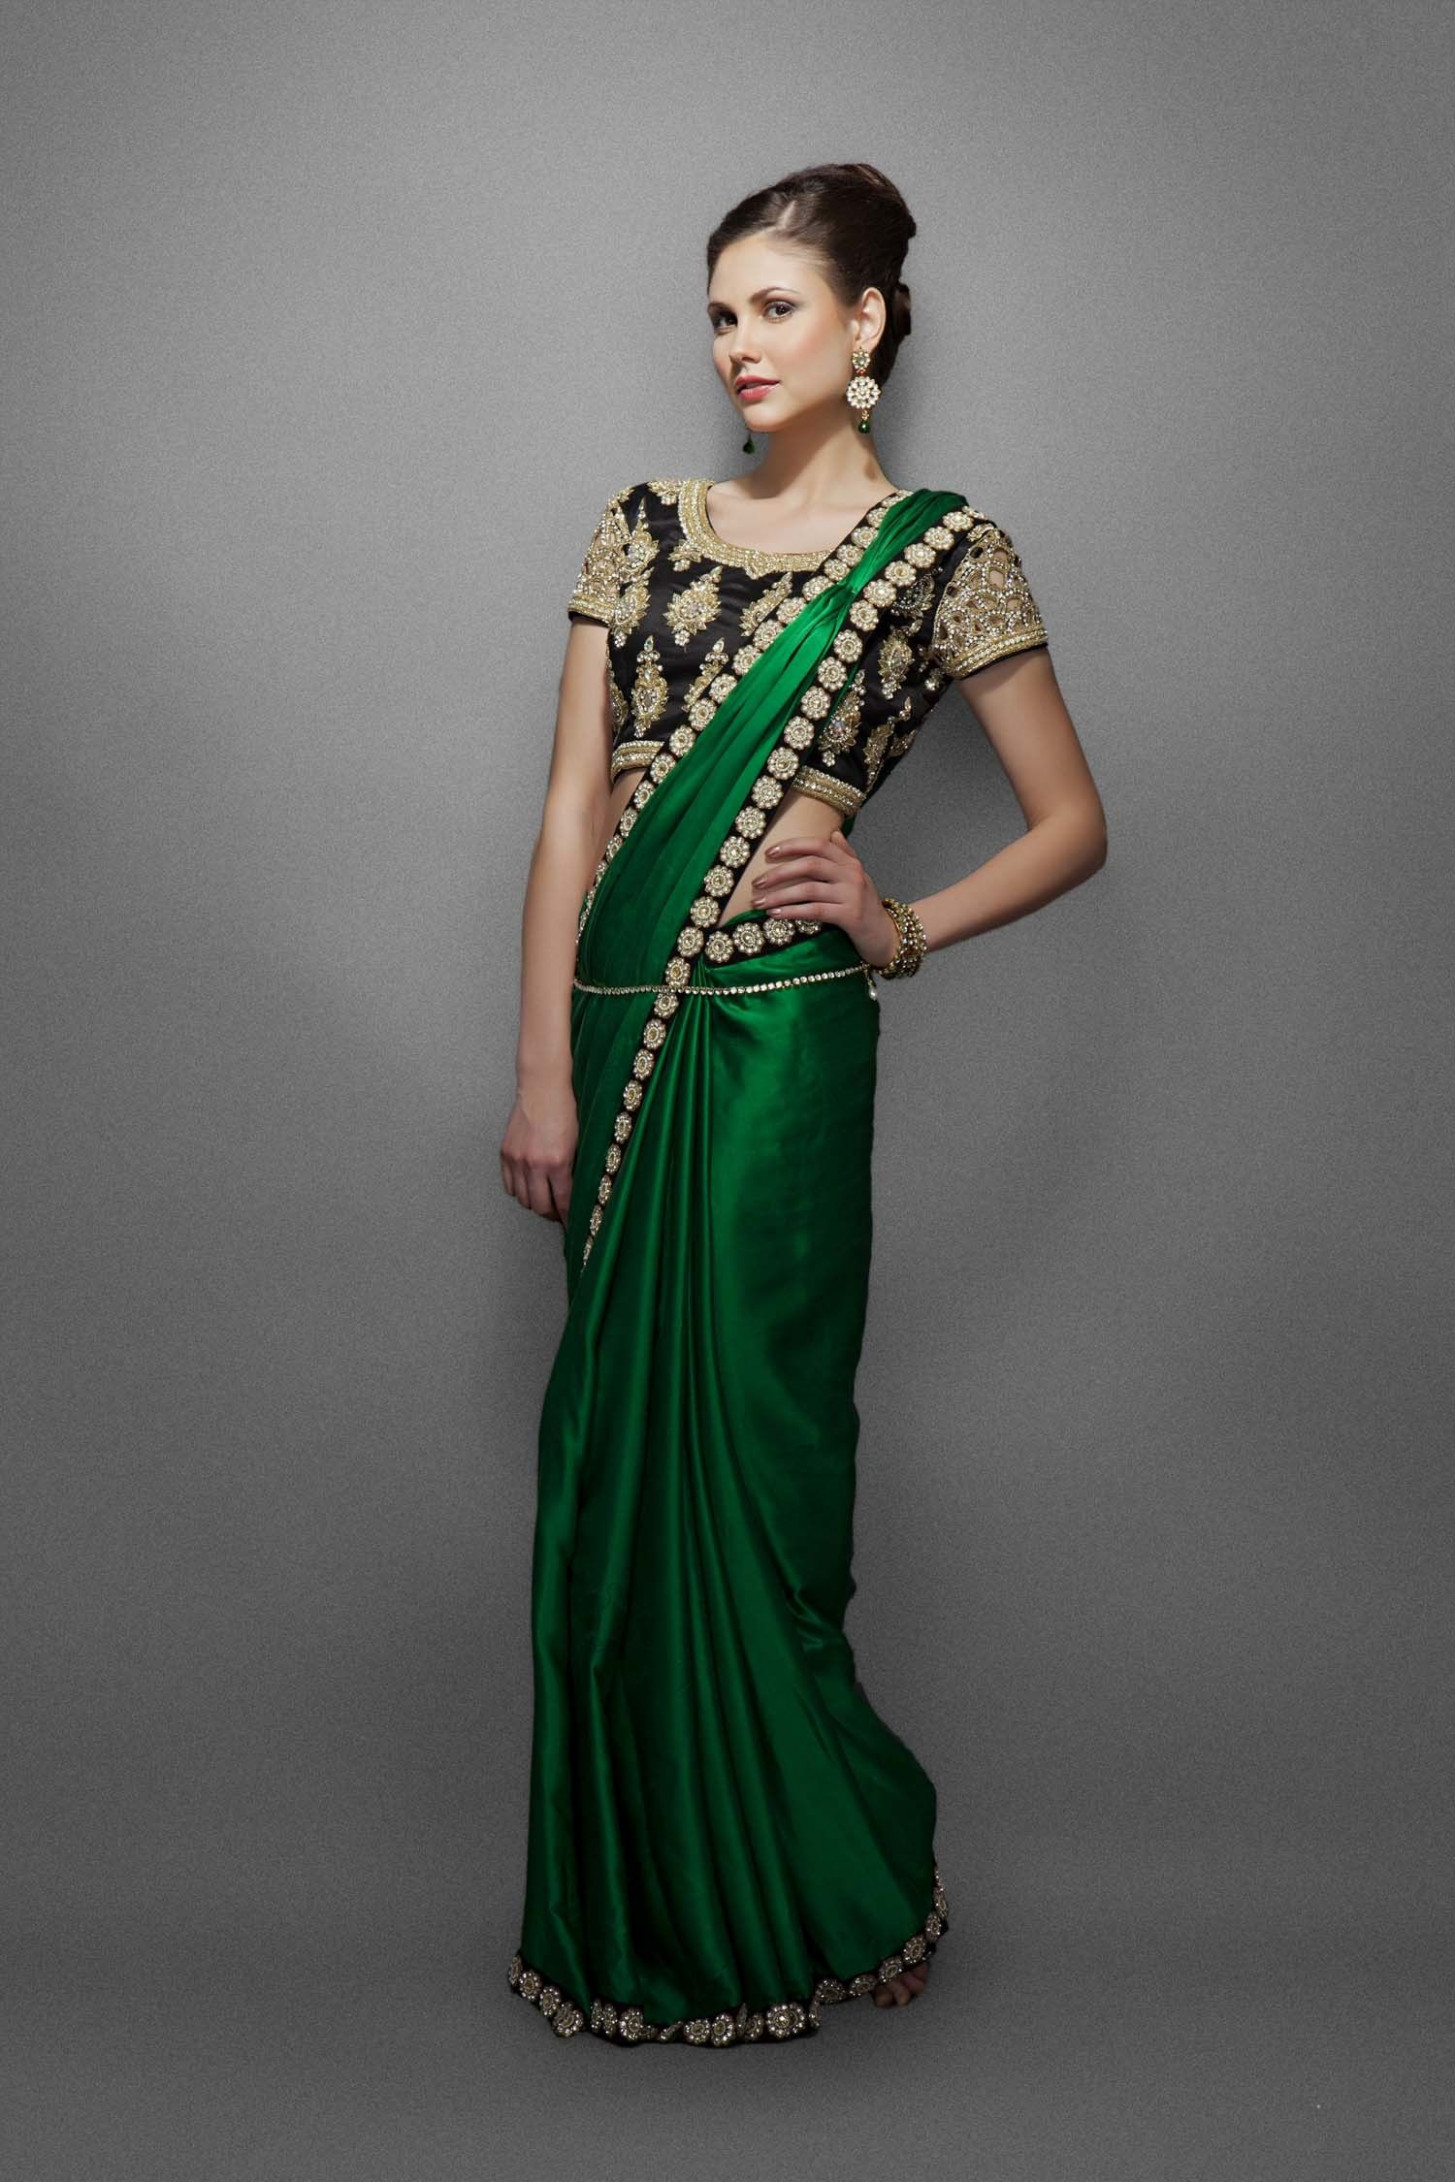 Emerald green sari with border & heavy blouse  Indian